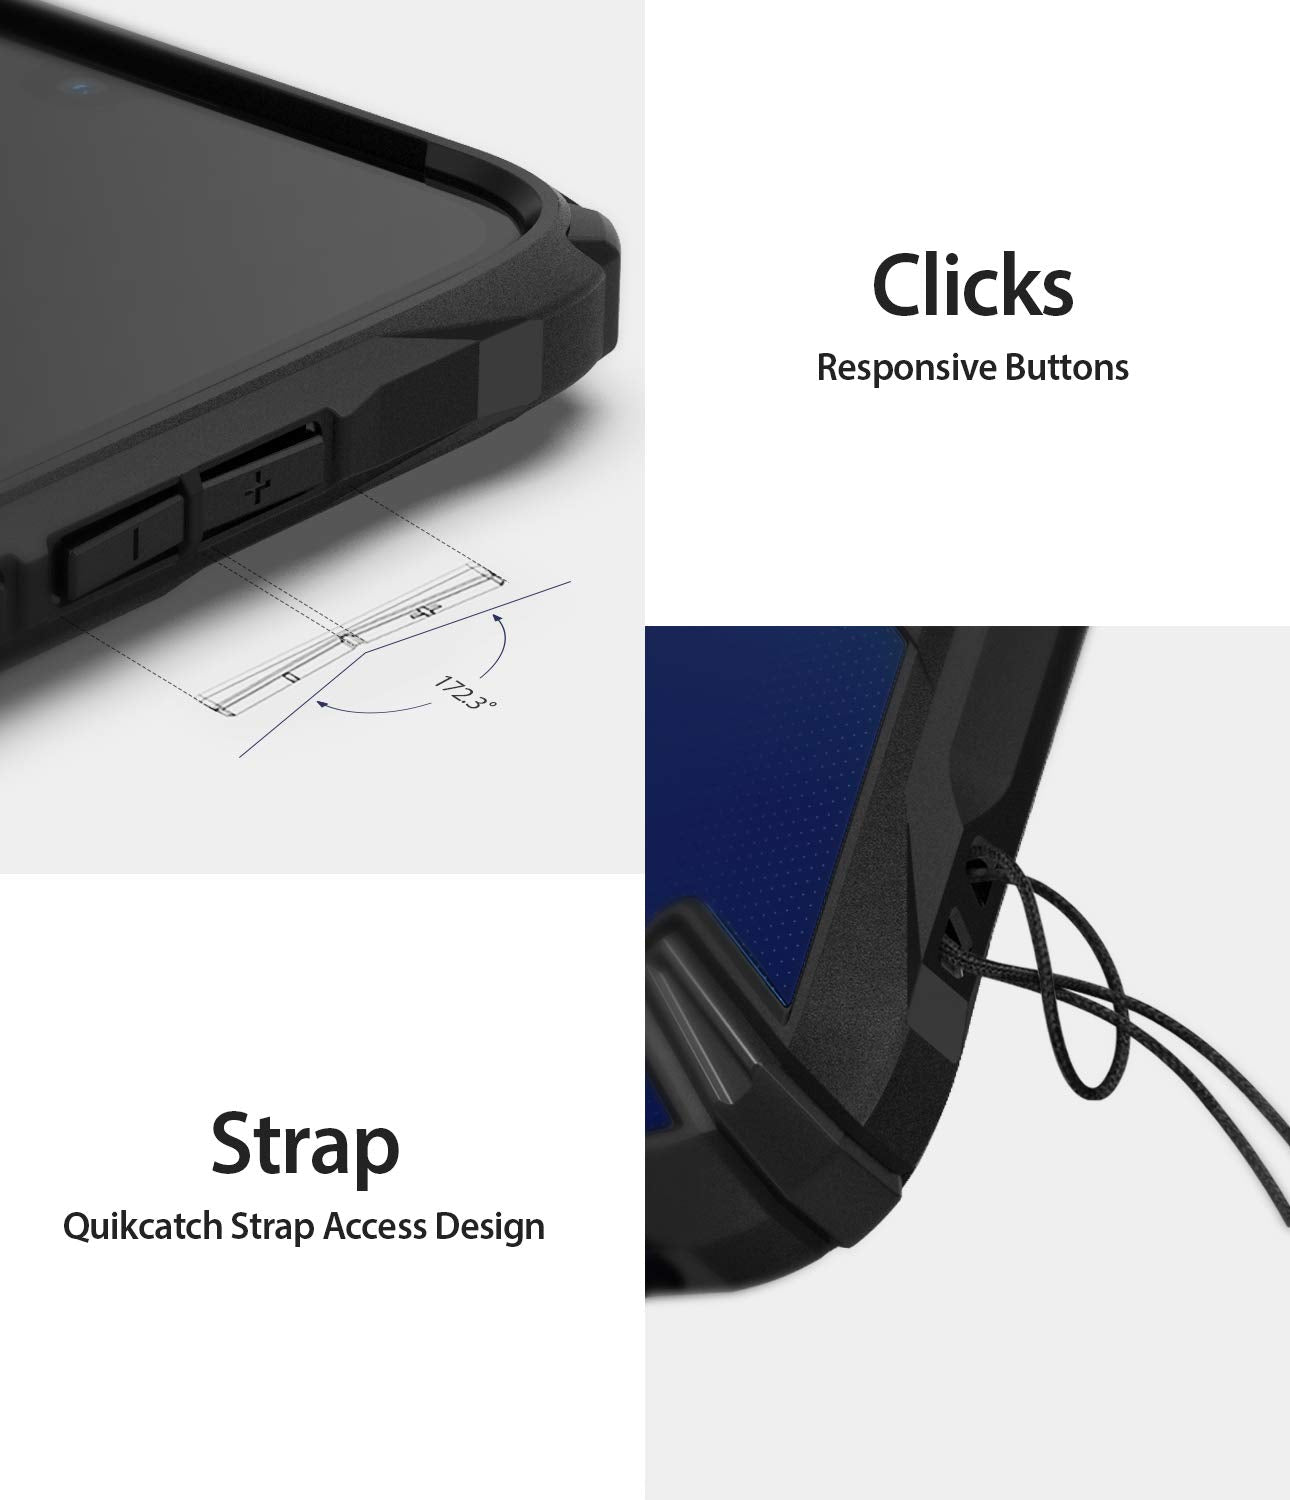 responsive buttons, quikcatch strap access design